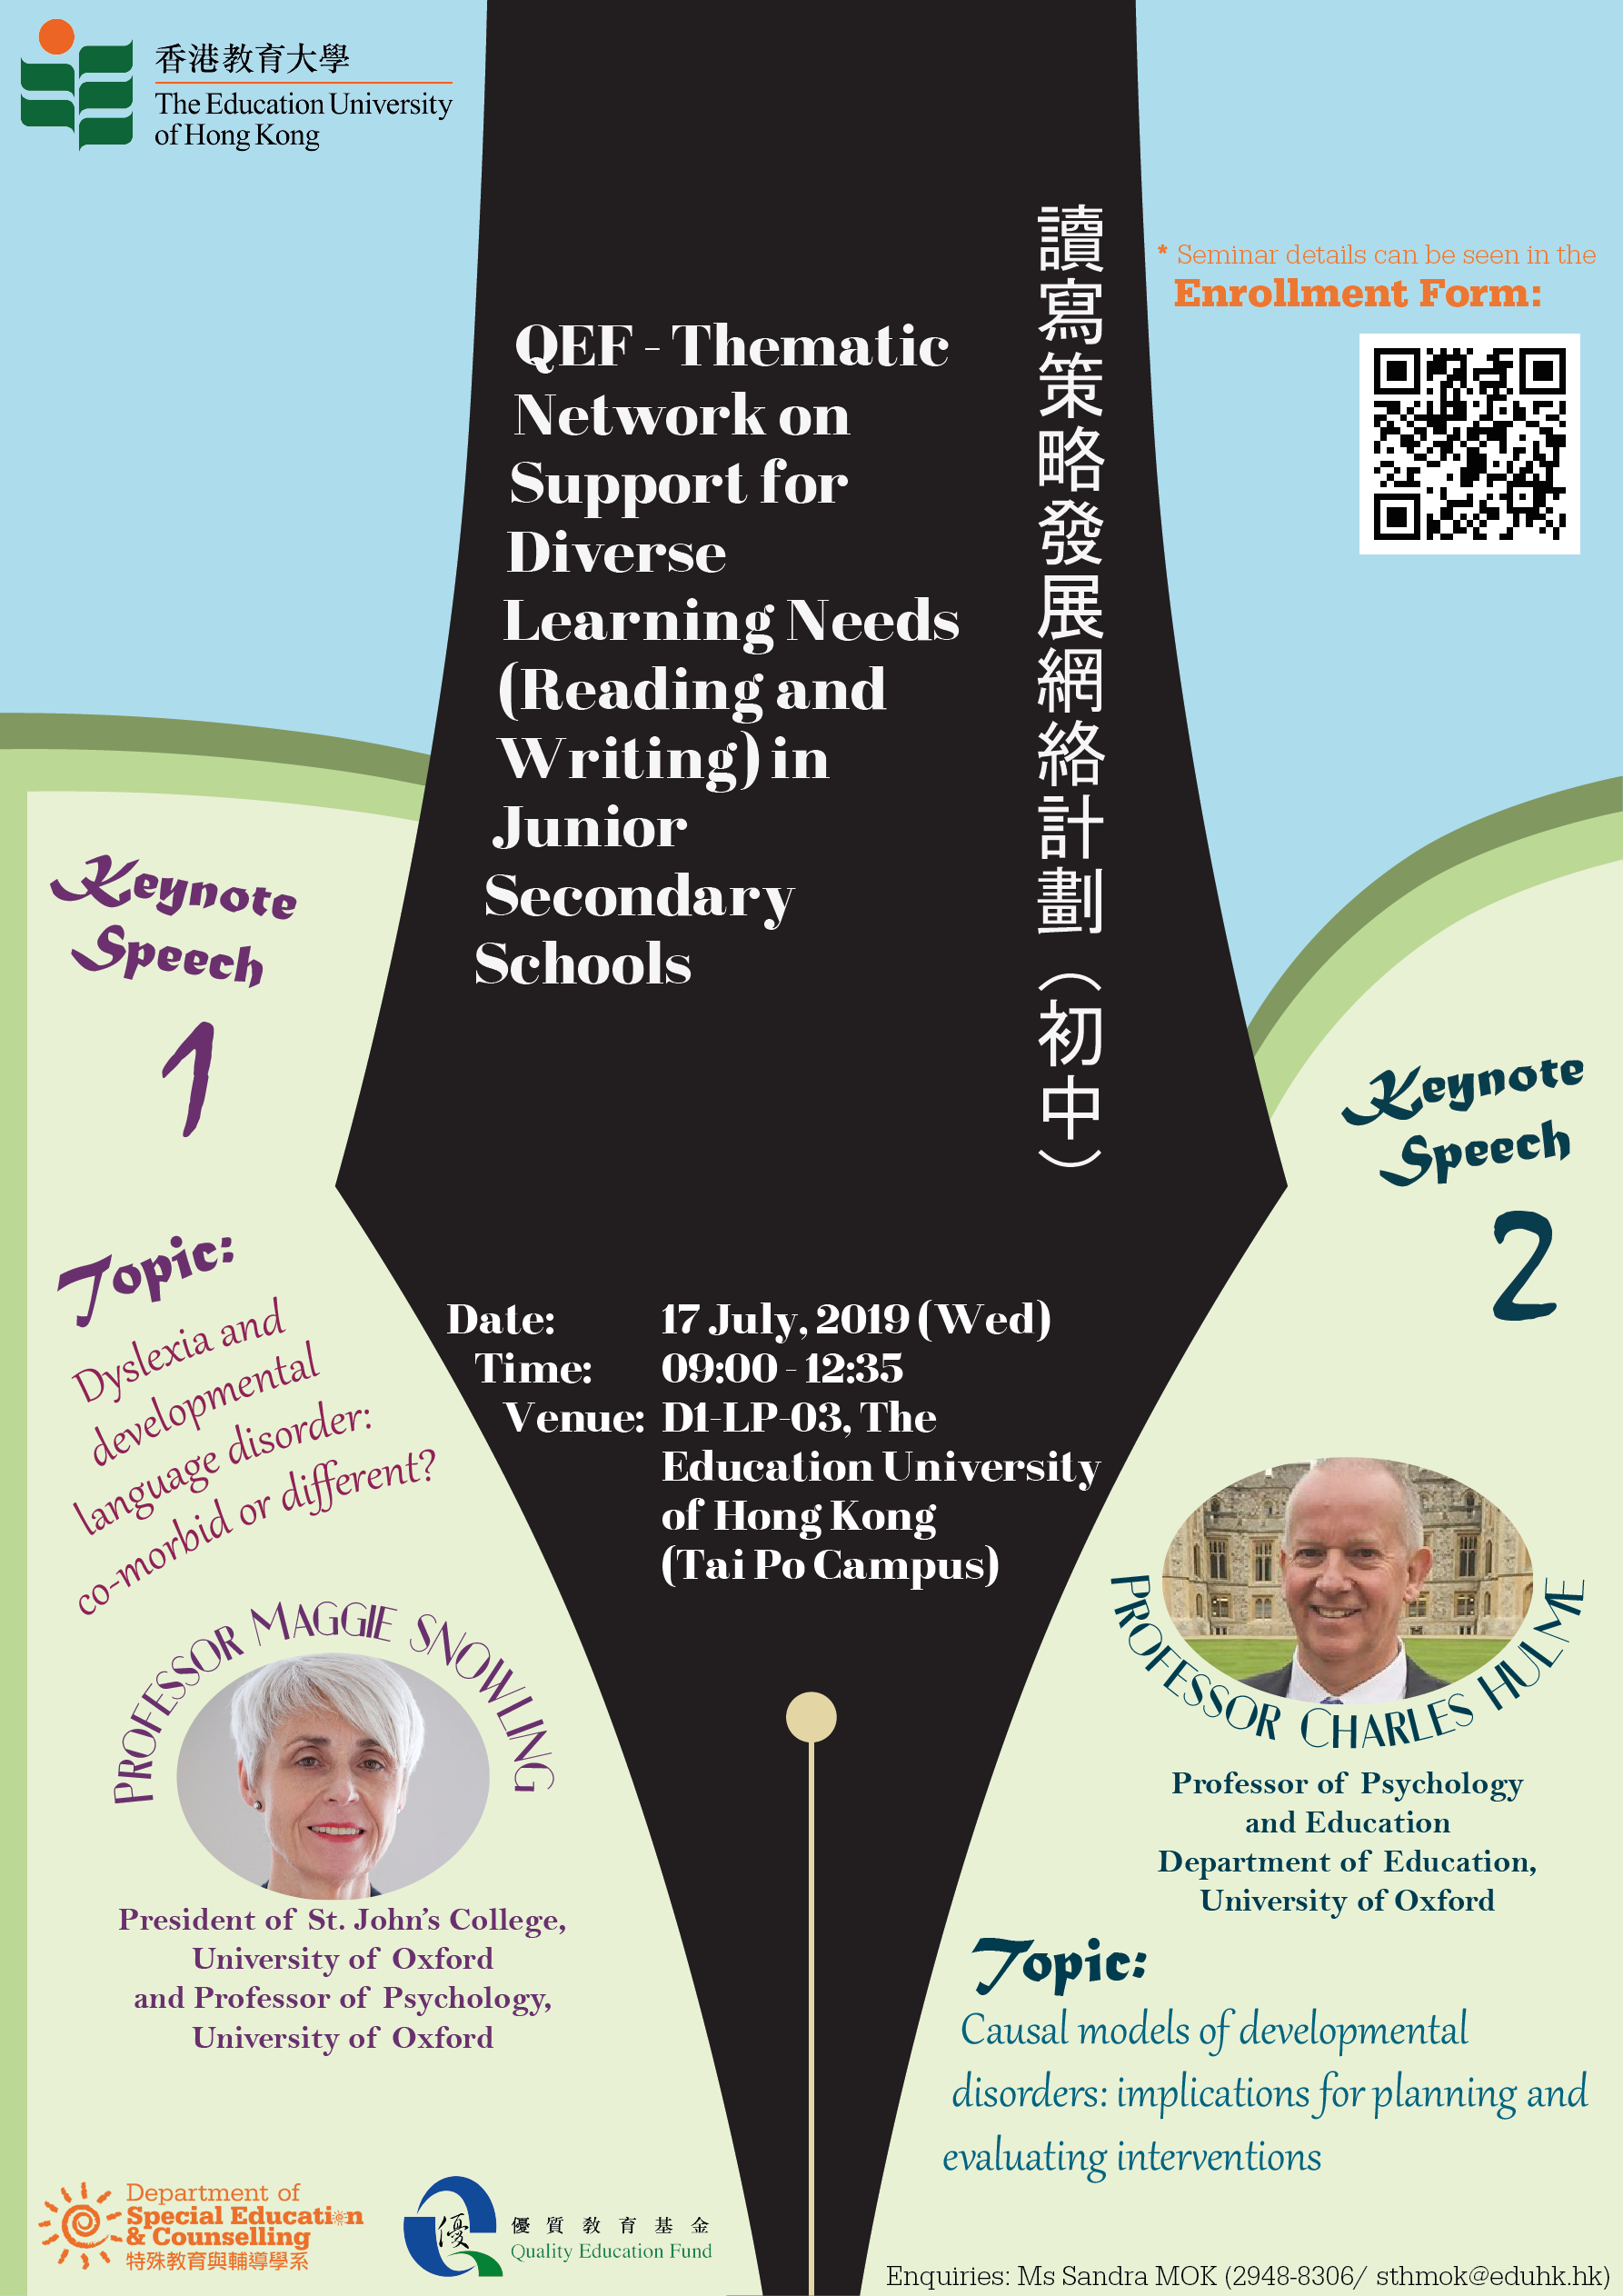 QEF, Thematic Network, Diverse Learning Needs, Reading and Writing, Junior Secondary Schools, Sharing Seminar, EdUHK